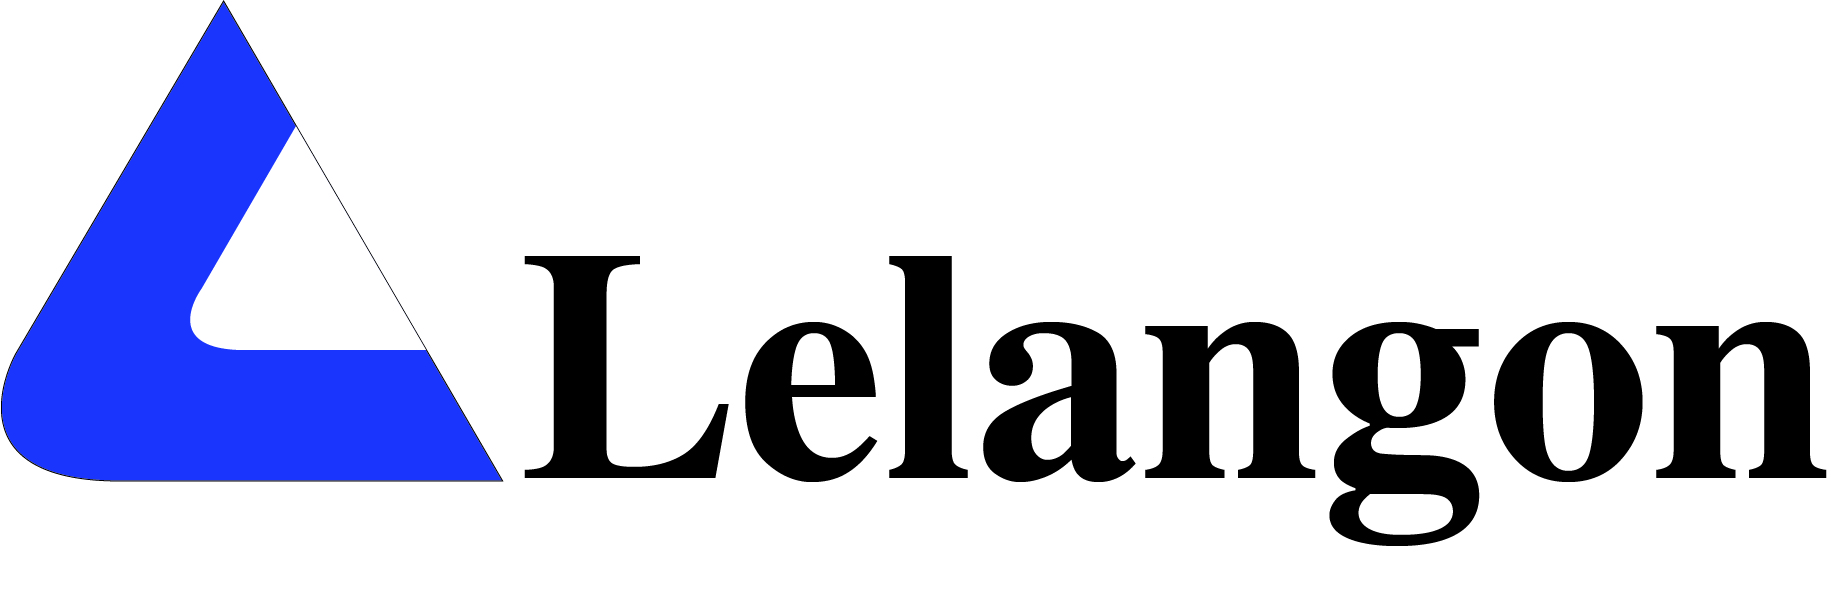 LELANGON | Crane Manufacture Specialist | Indonesia Crane Manufacture German Quality of Crane